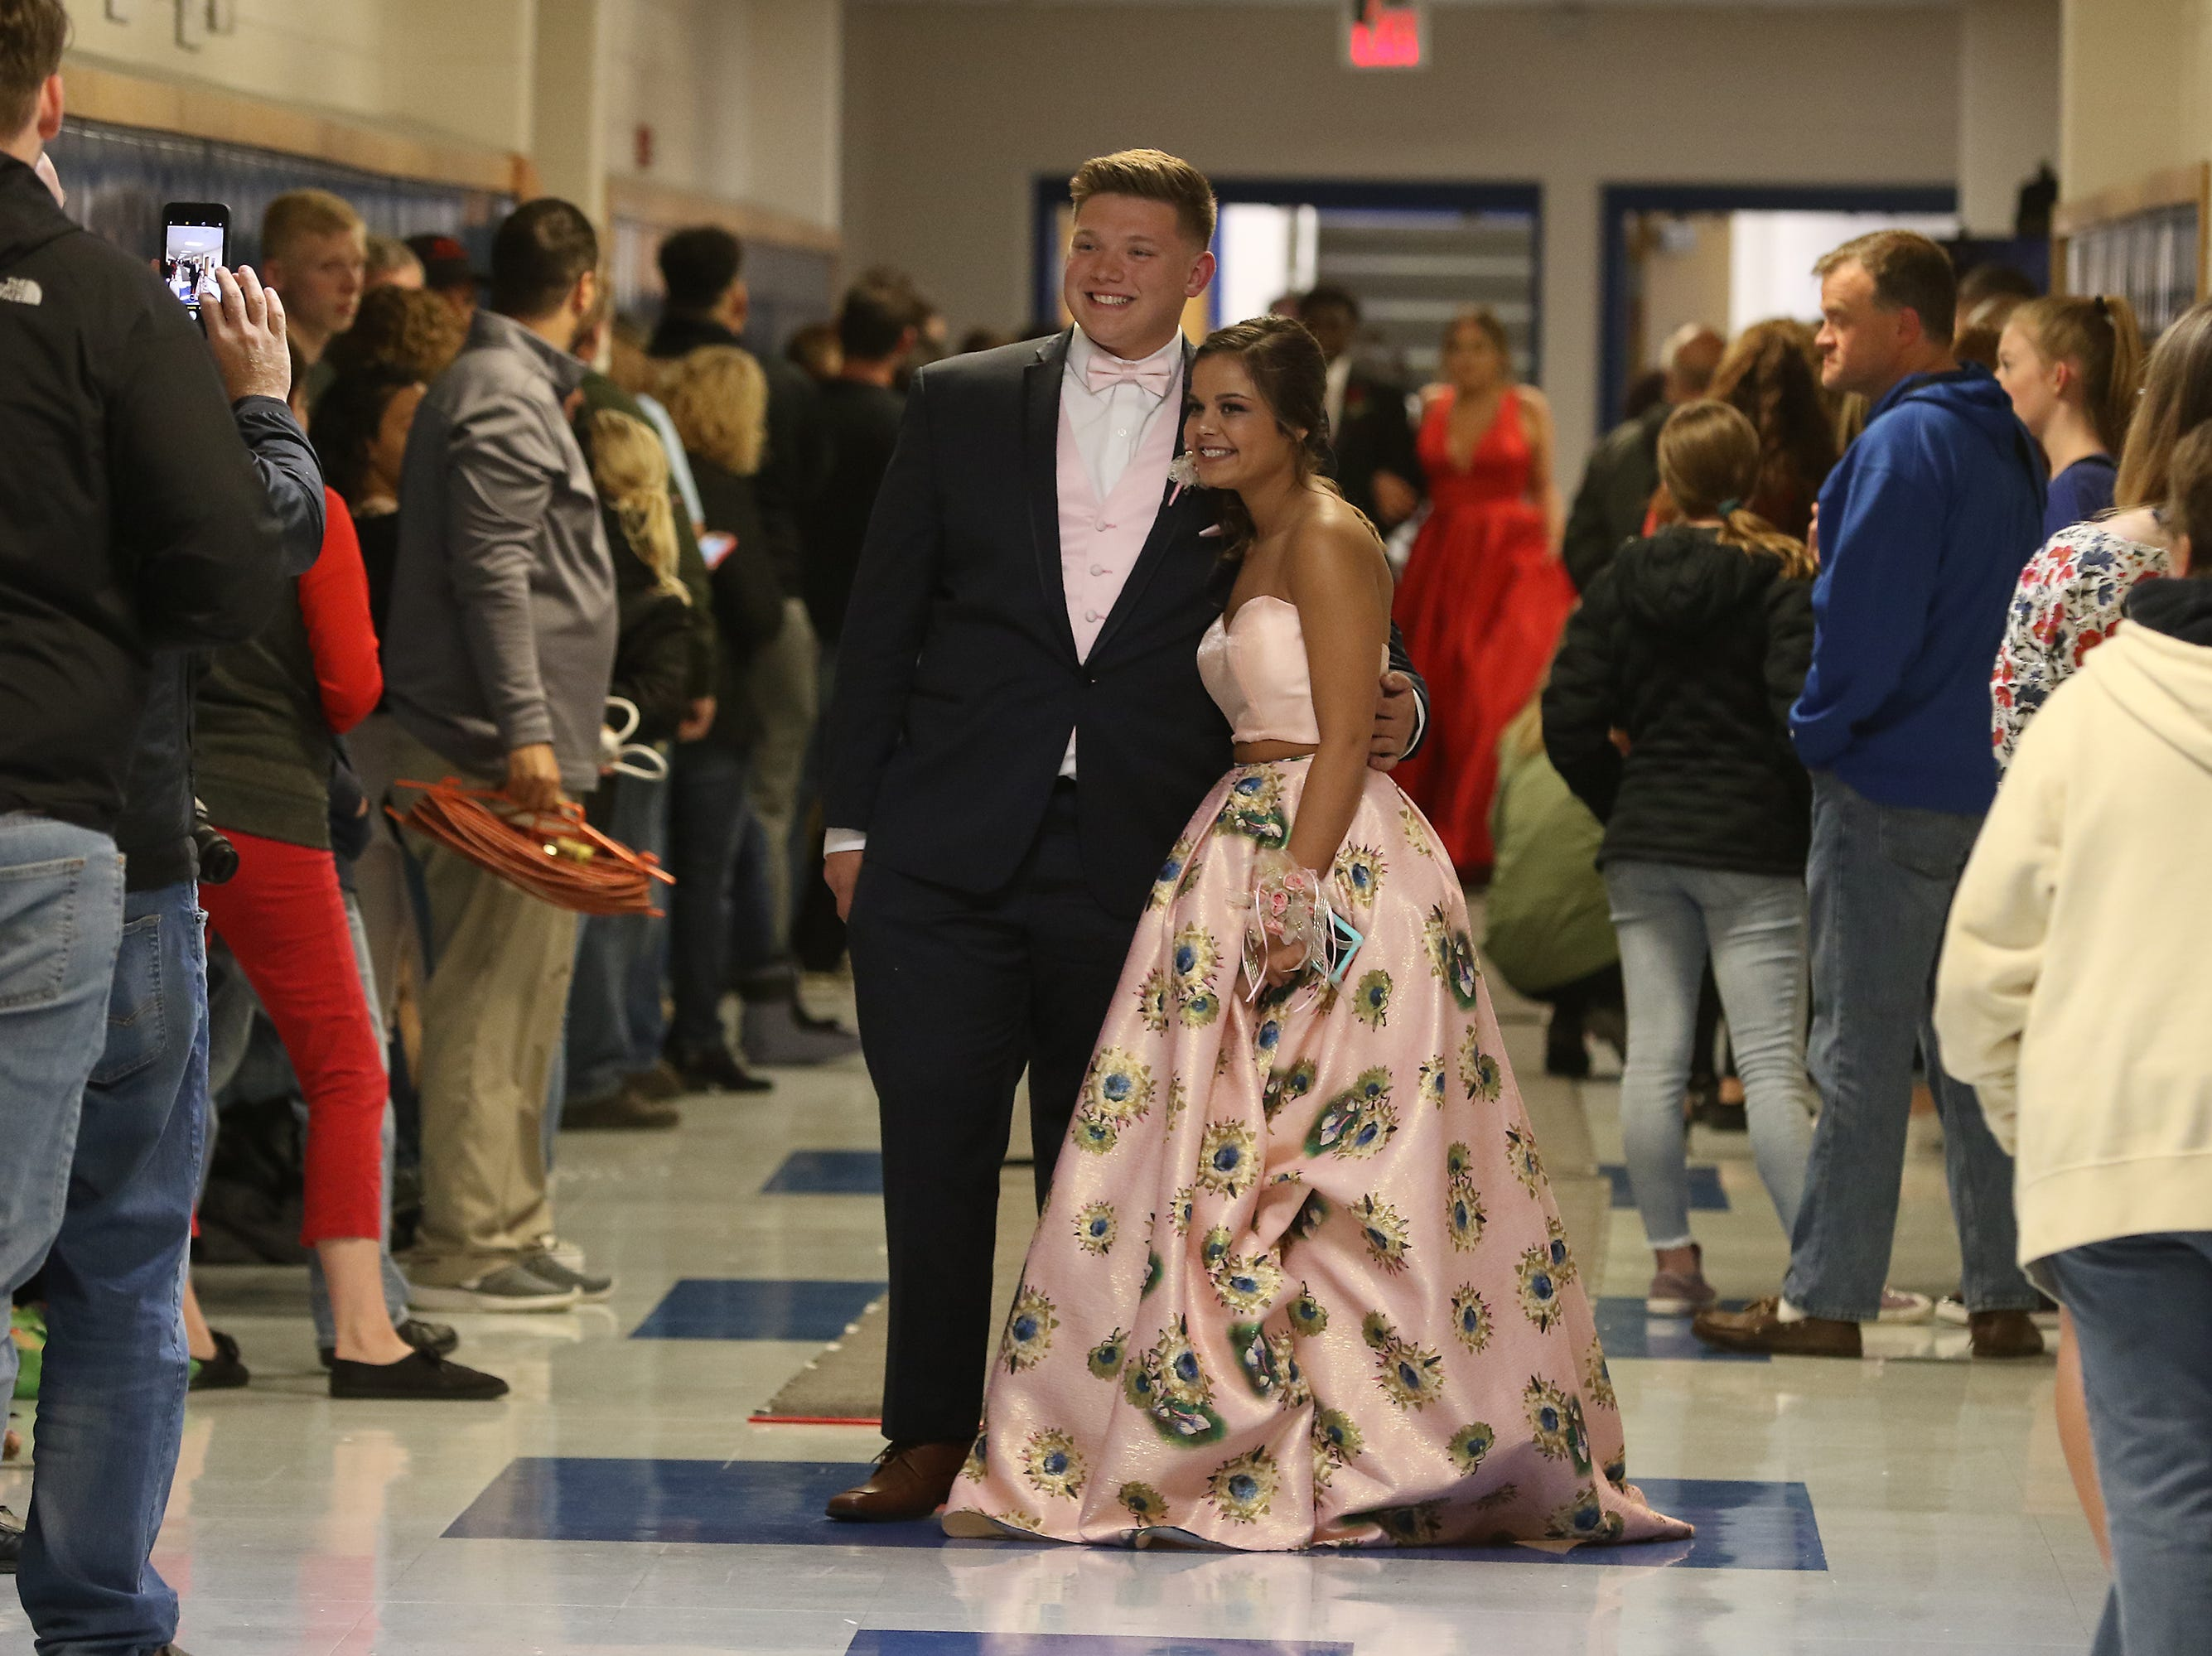 Zanesville High School held its prom Saturday night. The theme was Welcome to the Carnival.